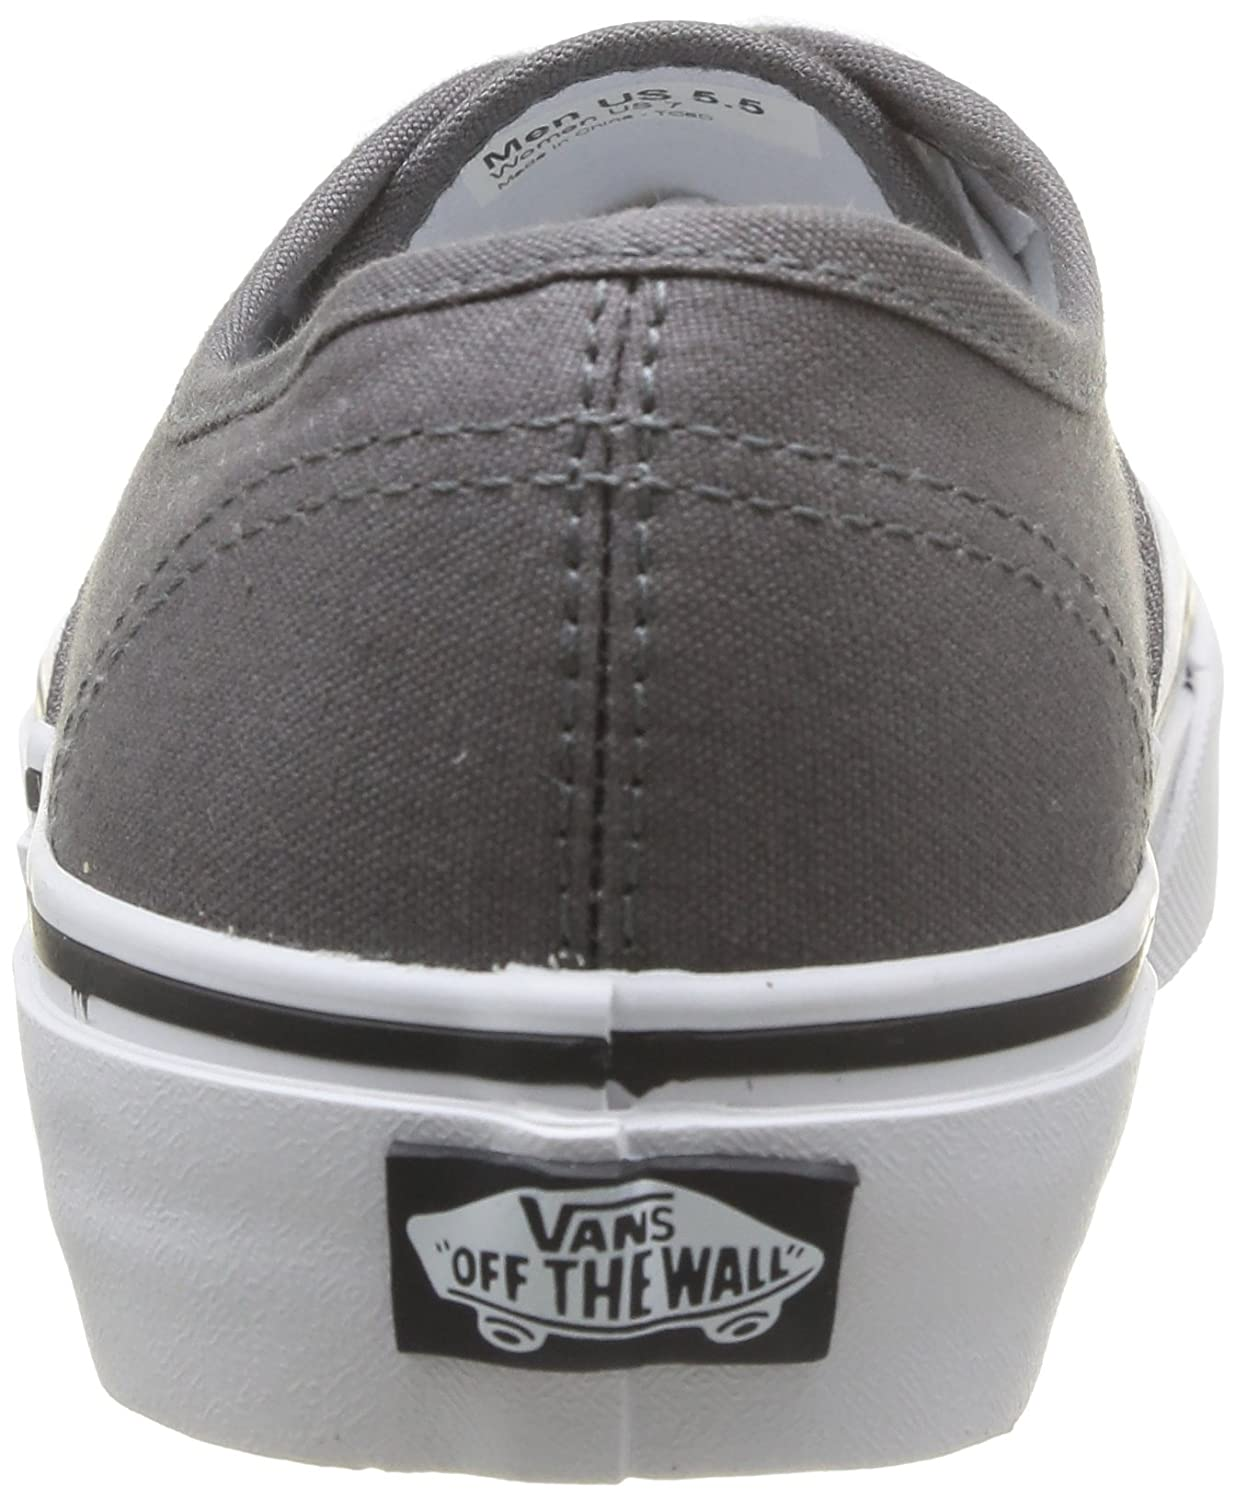 Vans Herren Authentic Core Classic Sneakers B003ADQEXQ 14.5 13 B(M) US Women / 13 14.5 D(M) US Men|Pewter/Black 736a43